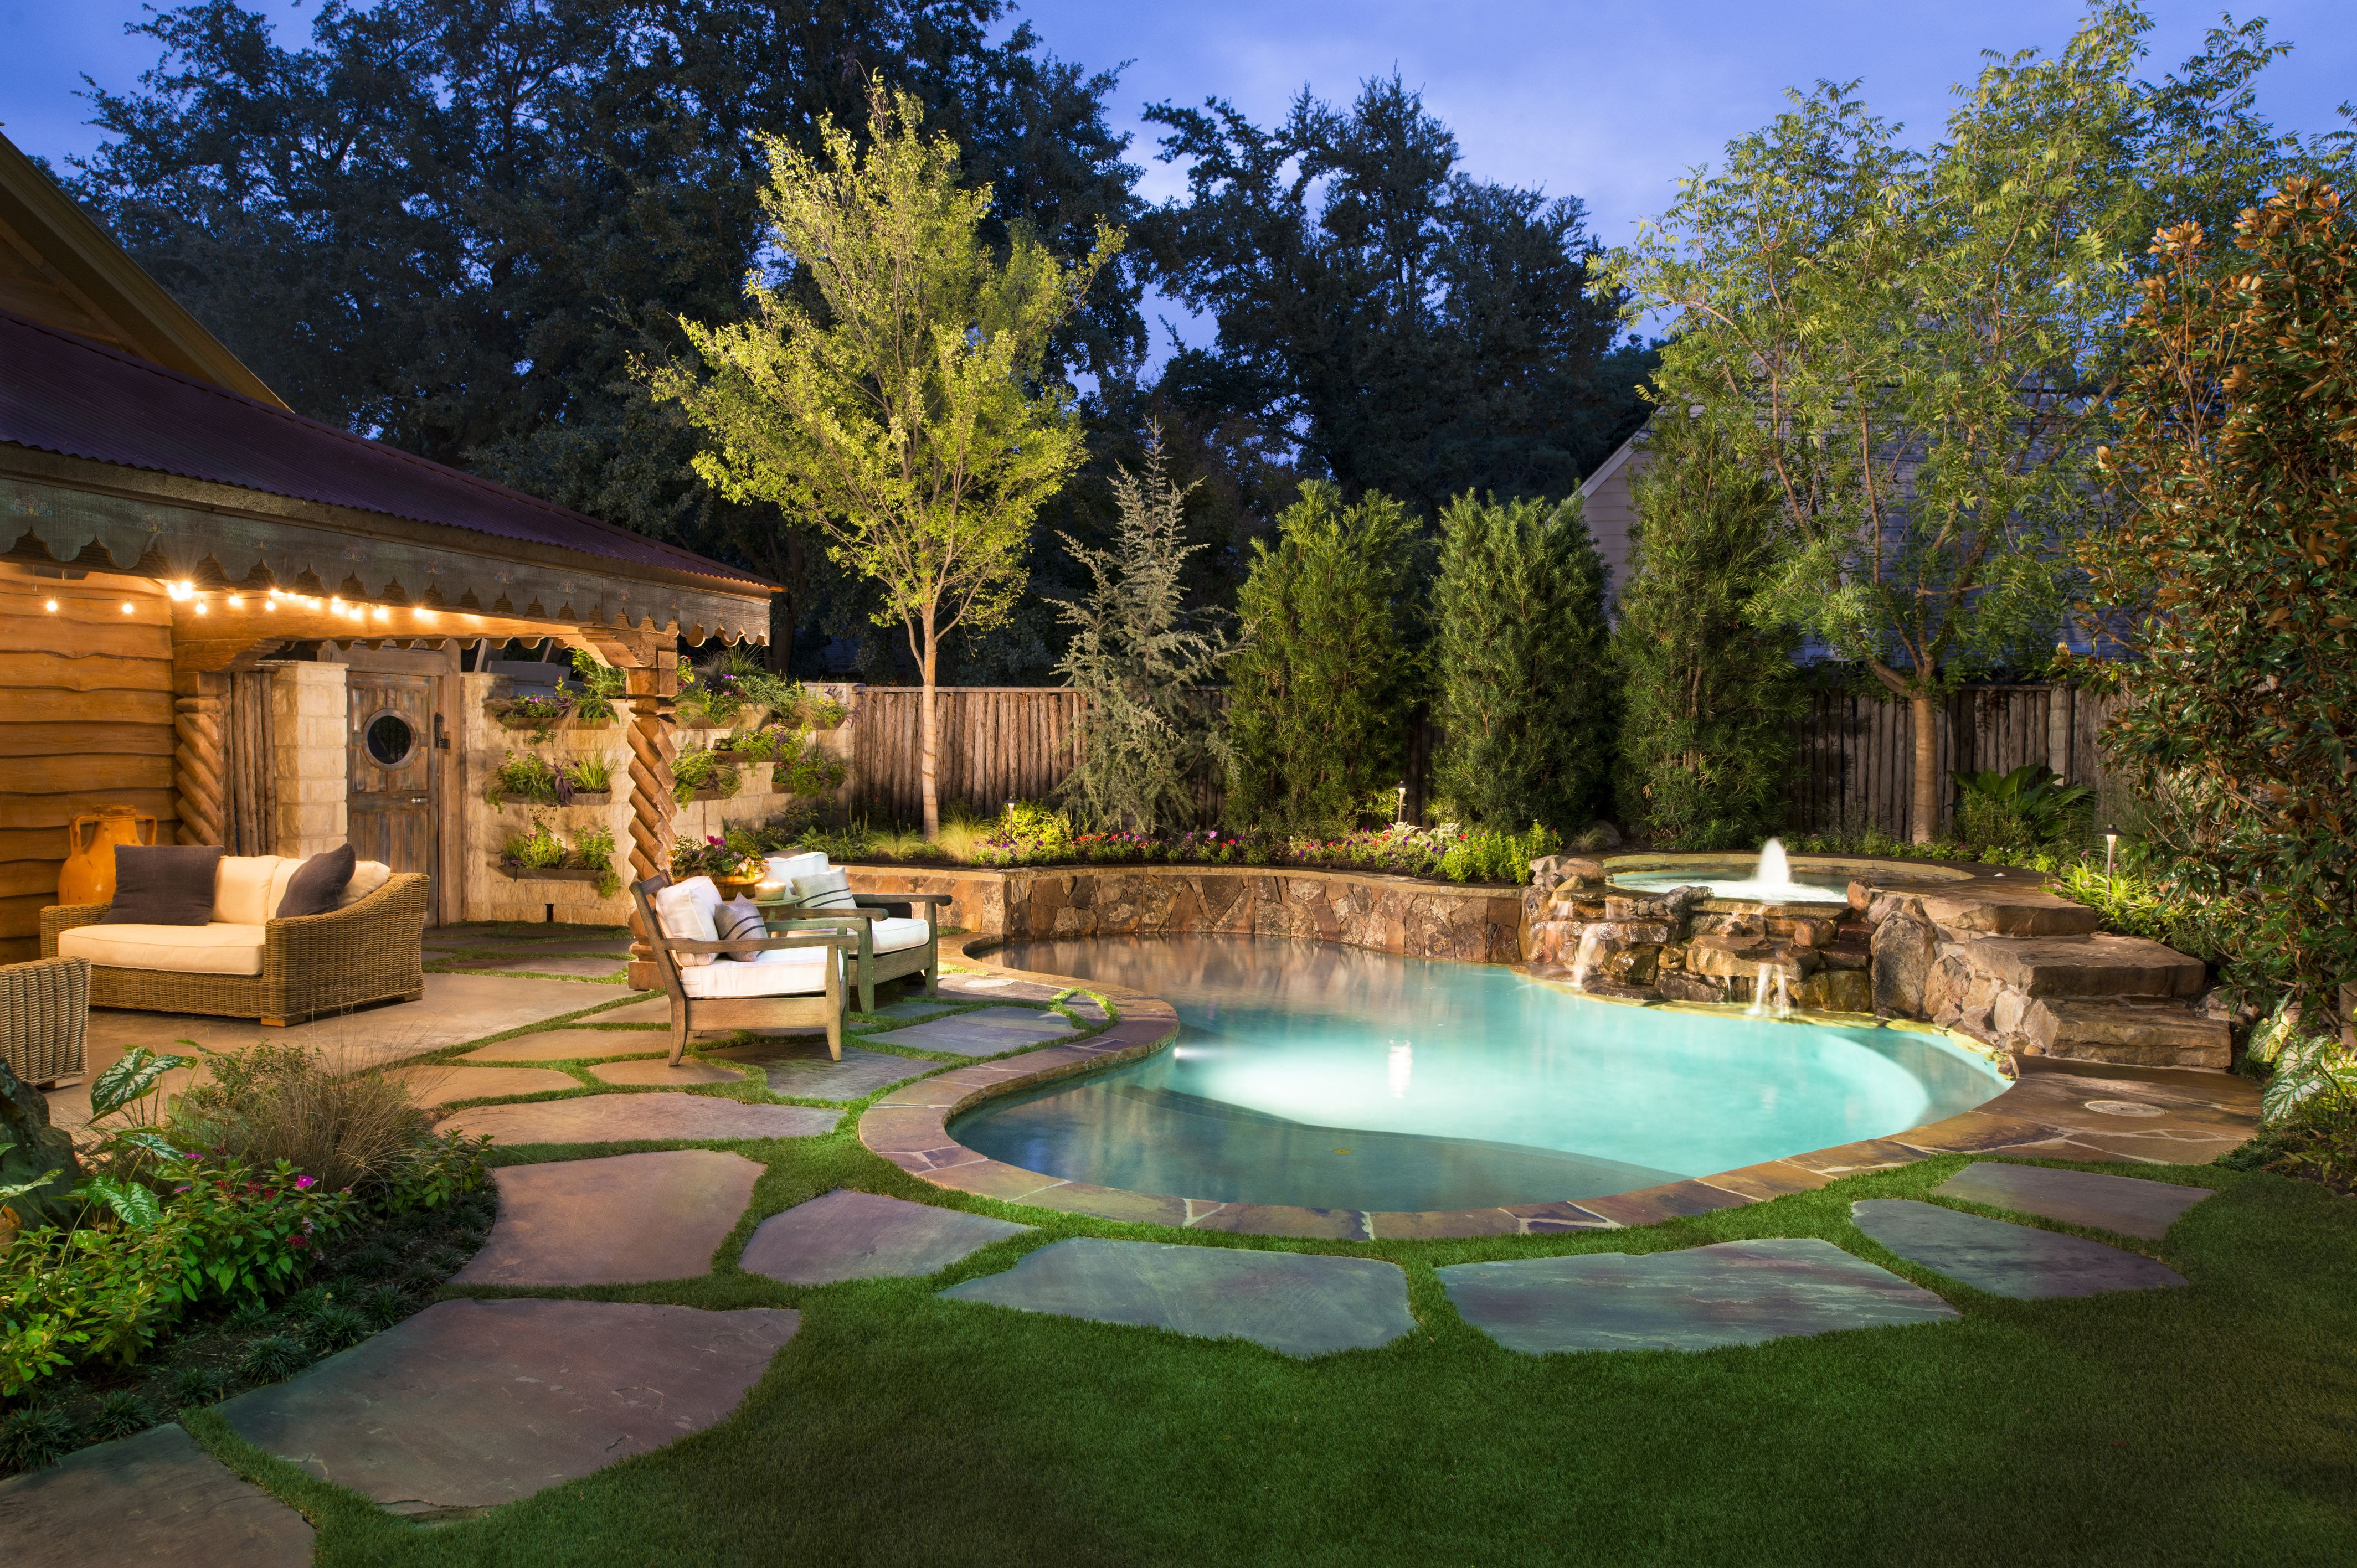 950da57afa52563198f58616a48c6a65 Top Result 50 Awesome Cost Of Outdoor Fireplace Picture 2018 Zat3